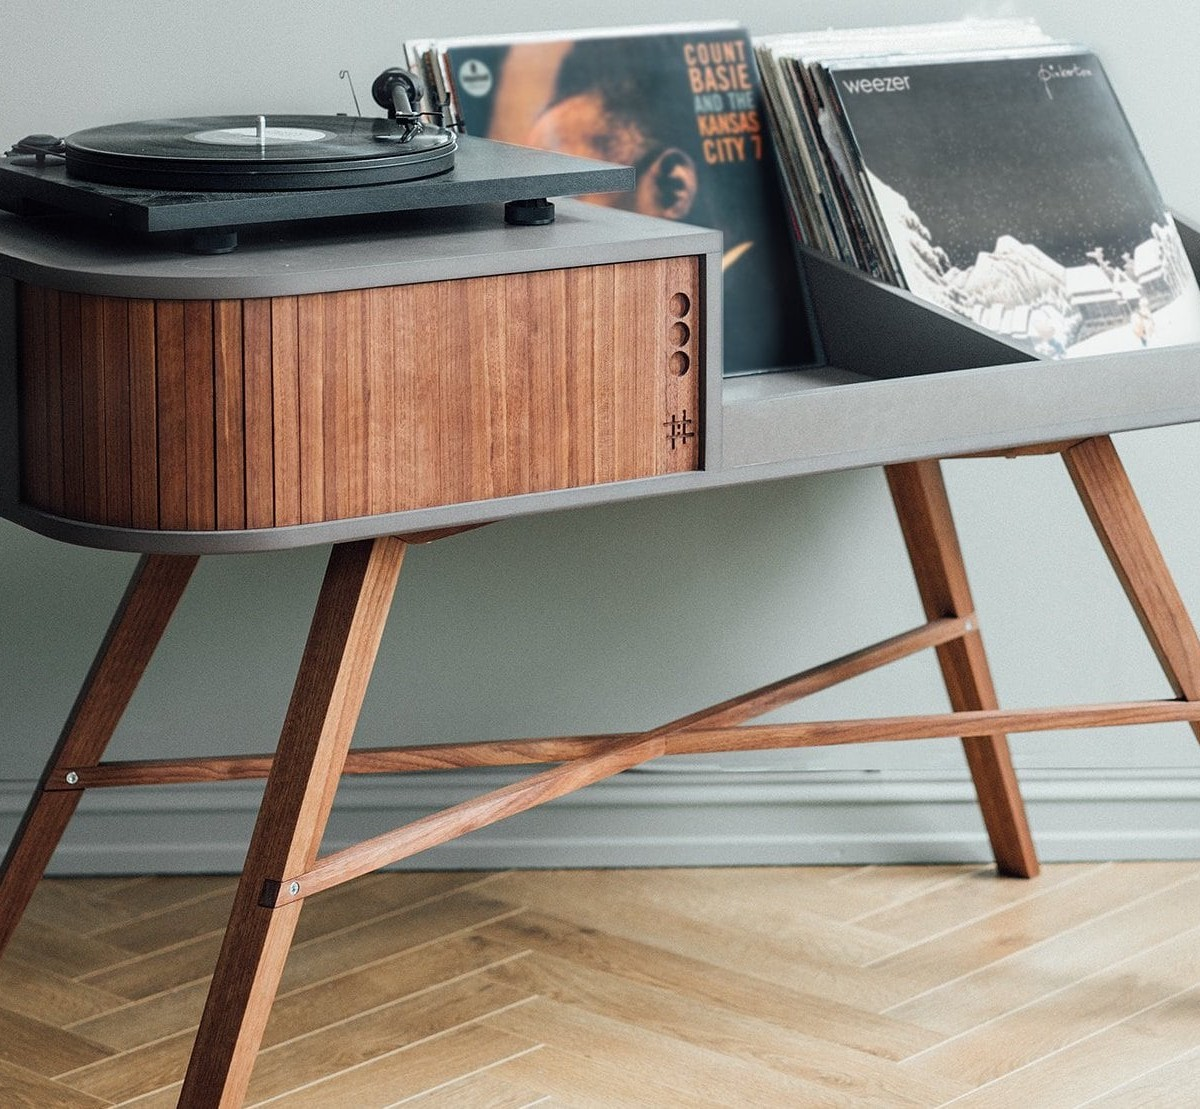 HRDL The Vinyl Table Record Player Cabinet displays your record collection